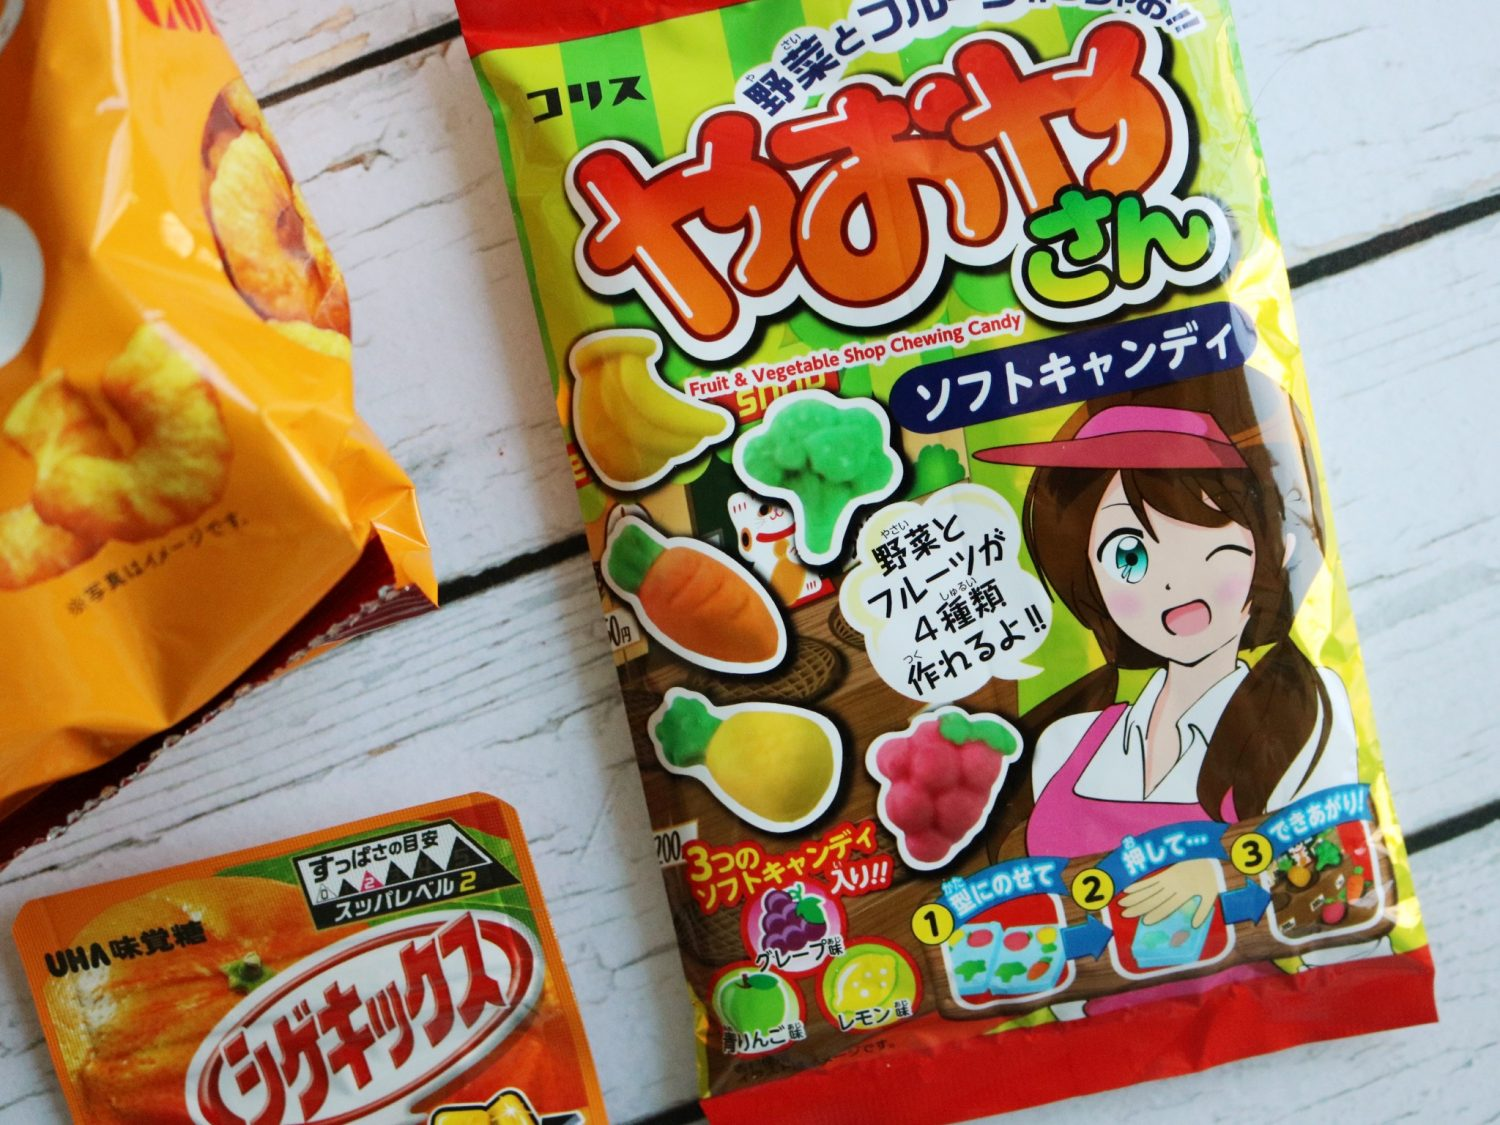 Coris Fruit & Vegetable Shop Chewing Candy